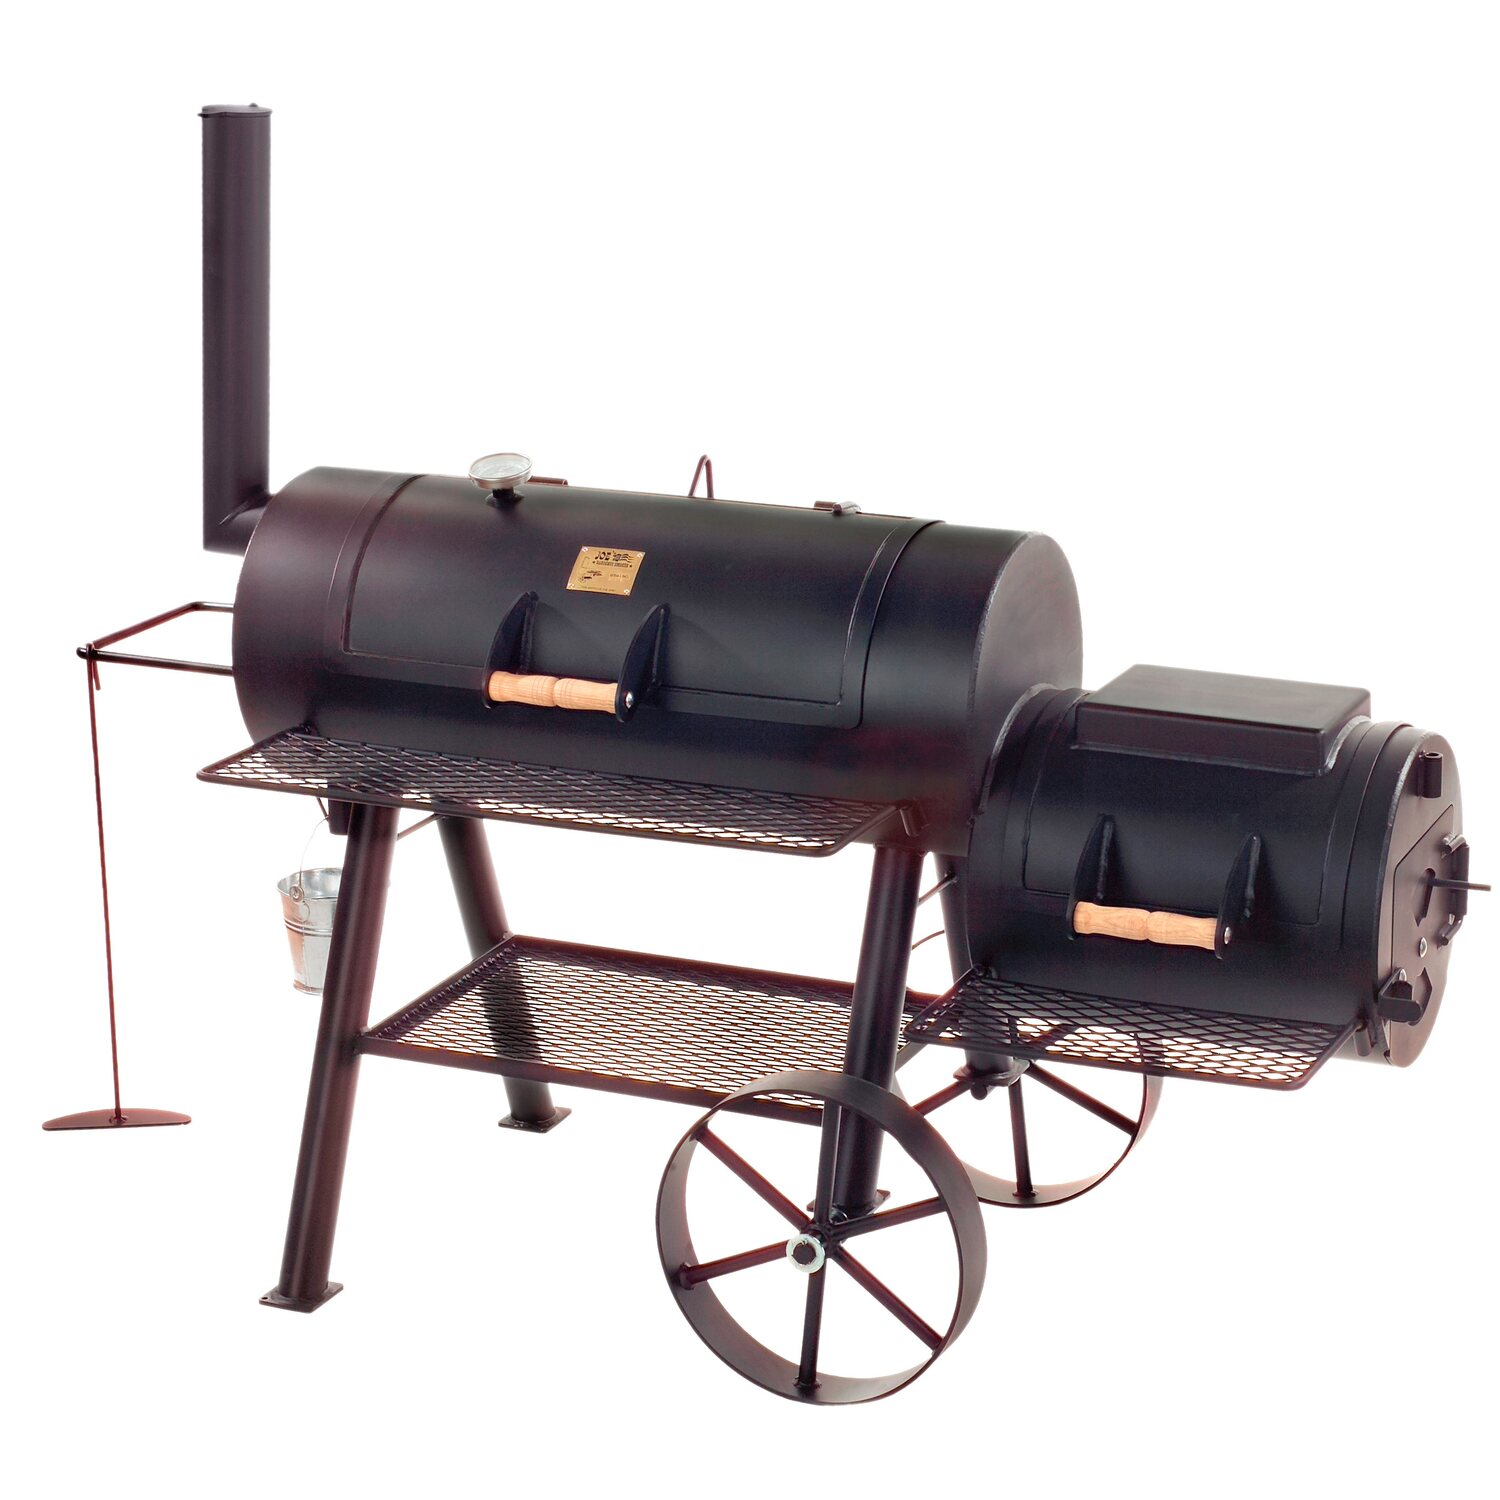 Joe s barbeque smoker texas classic kaufen bei obi for Obi barbecue